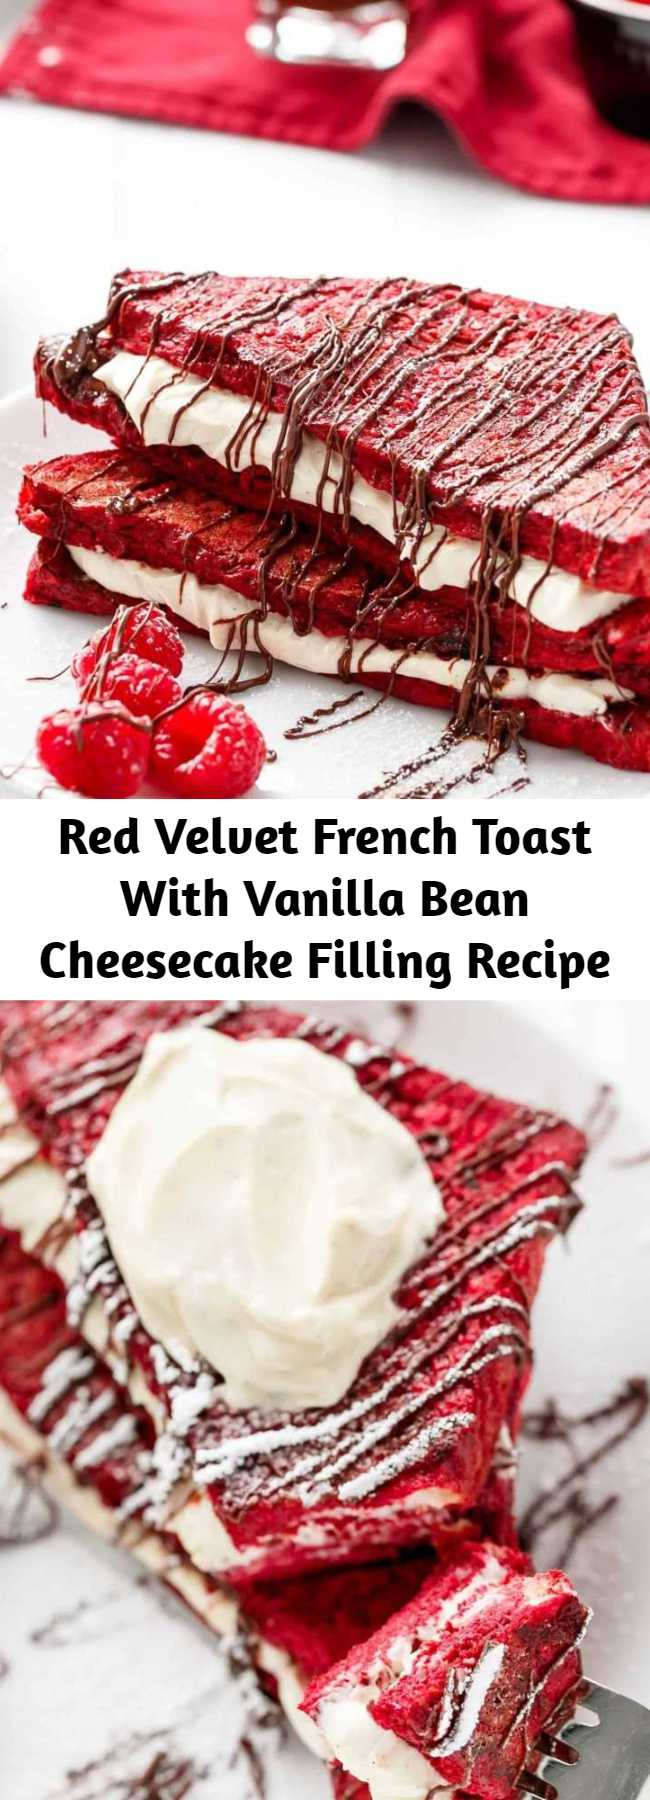 Red Velvet French Toast With Vanilla Bean Cheesecake Filling Recipe - Red Velvet made into French Toast and stuffed with a sweet Vanilla Bean Cheesecake filling! The perfect Mother's Day OR Valentine's Day Breakfast!